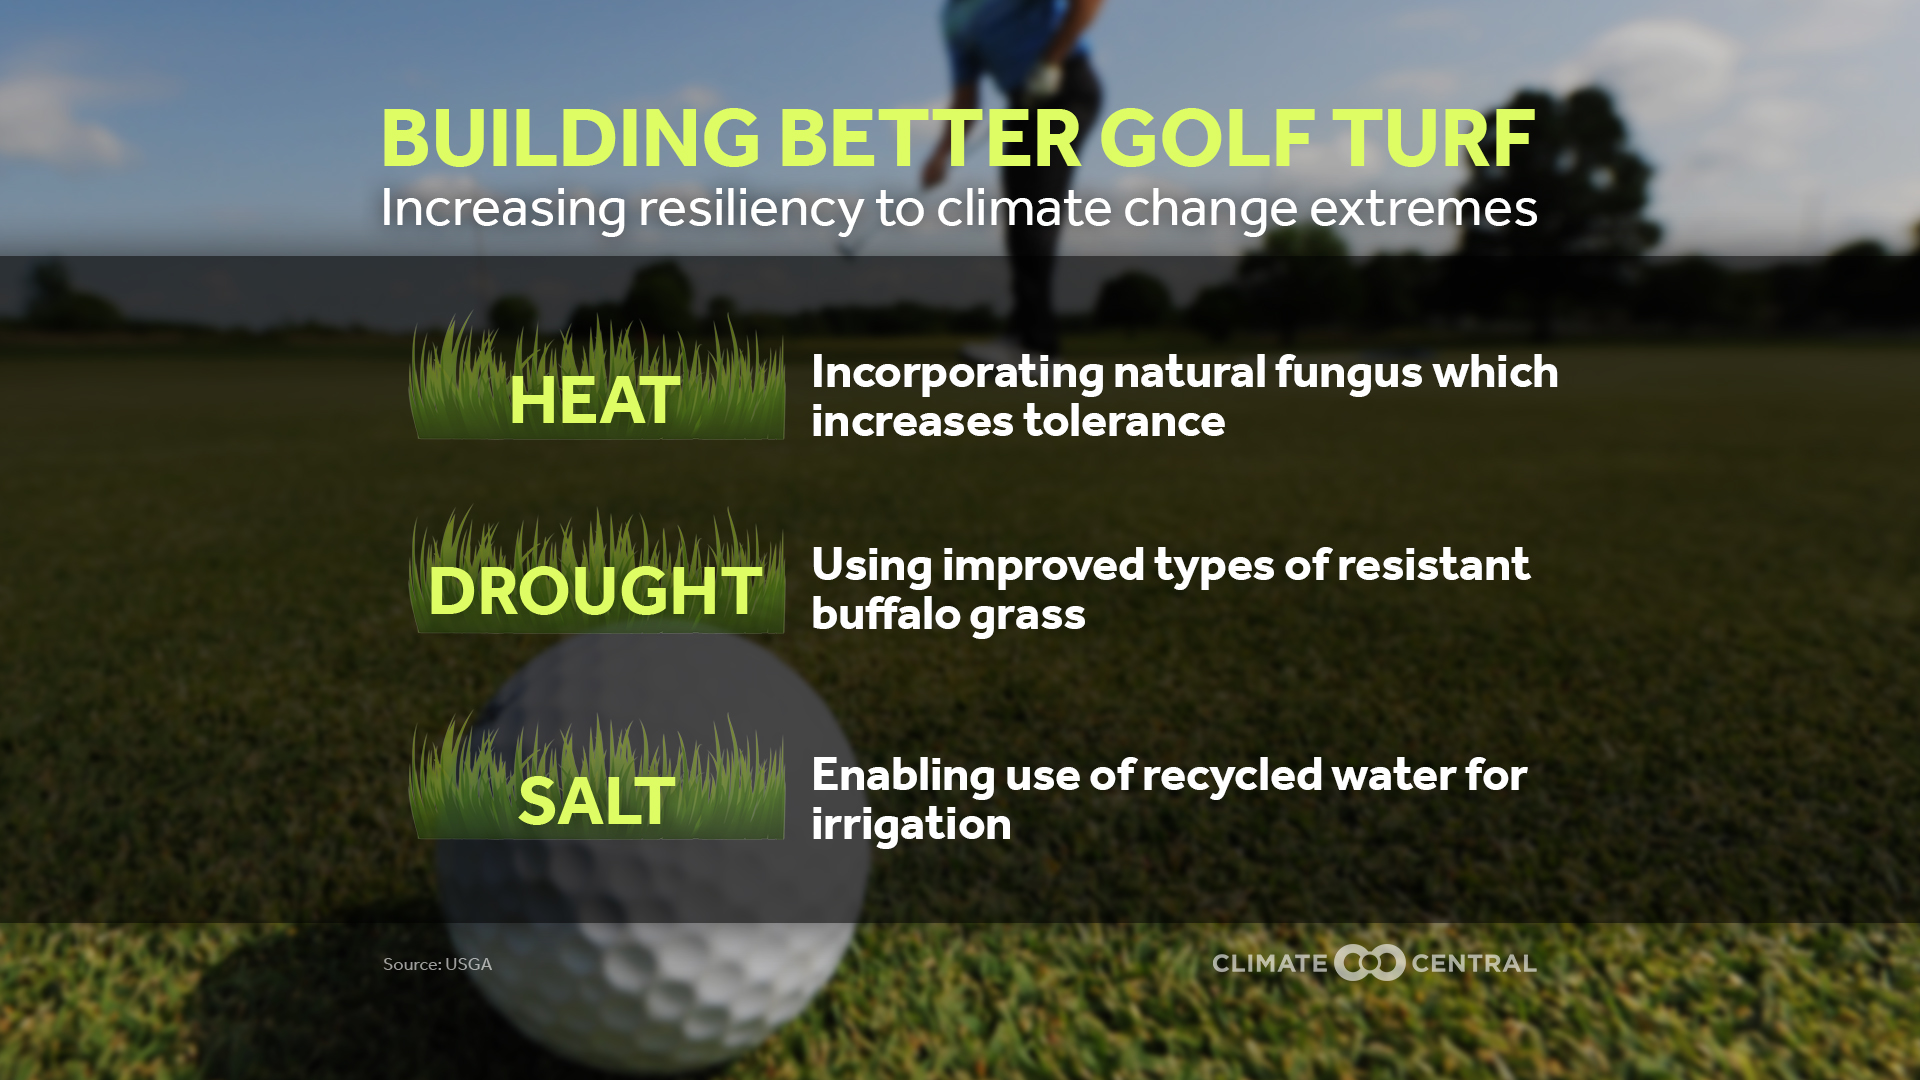 Golf courses are adapting to climate change